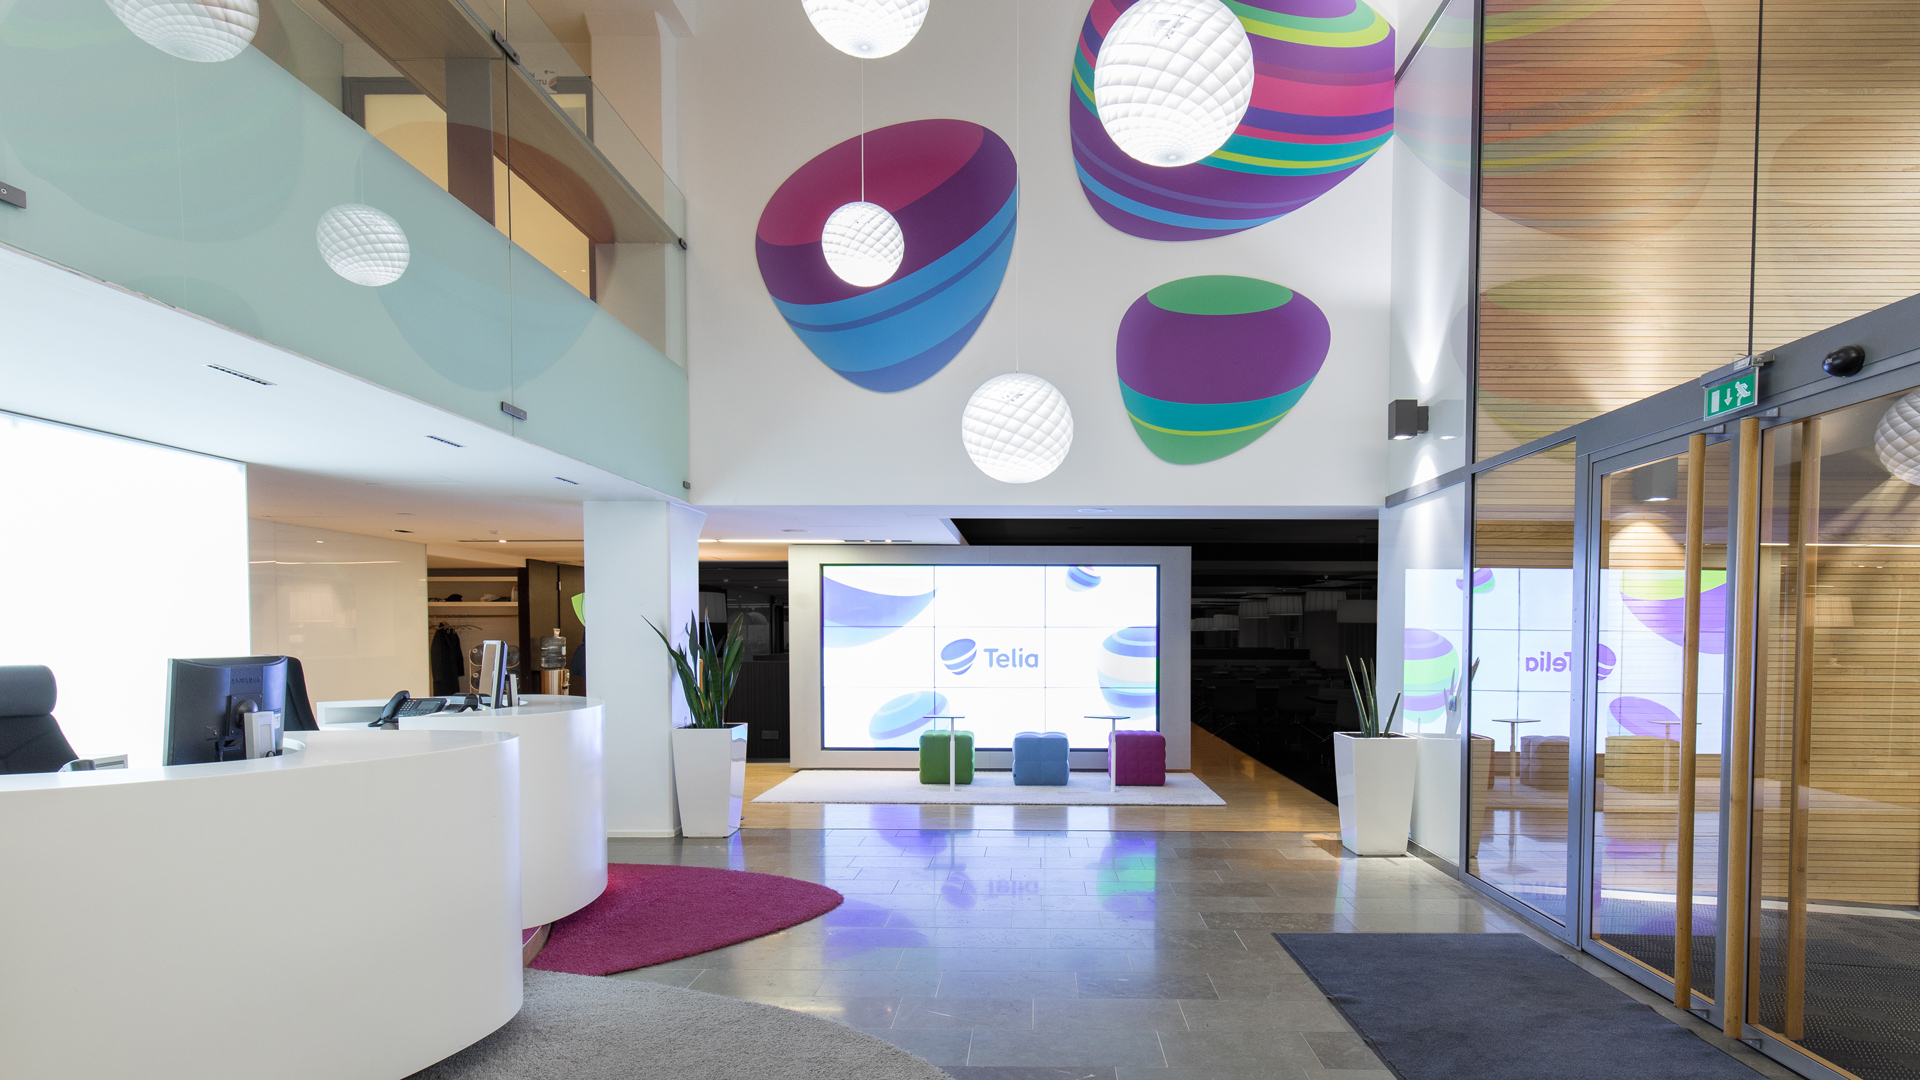 Telia-Finland-Headquarters-Teollisuuskatu-GI-Project-11